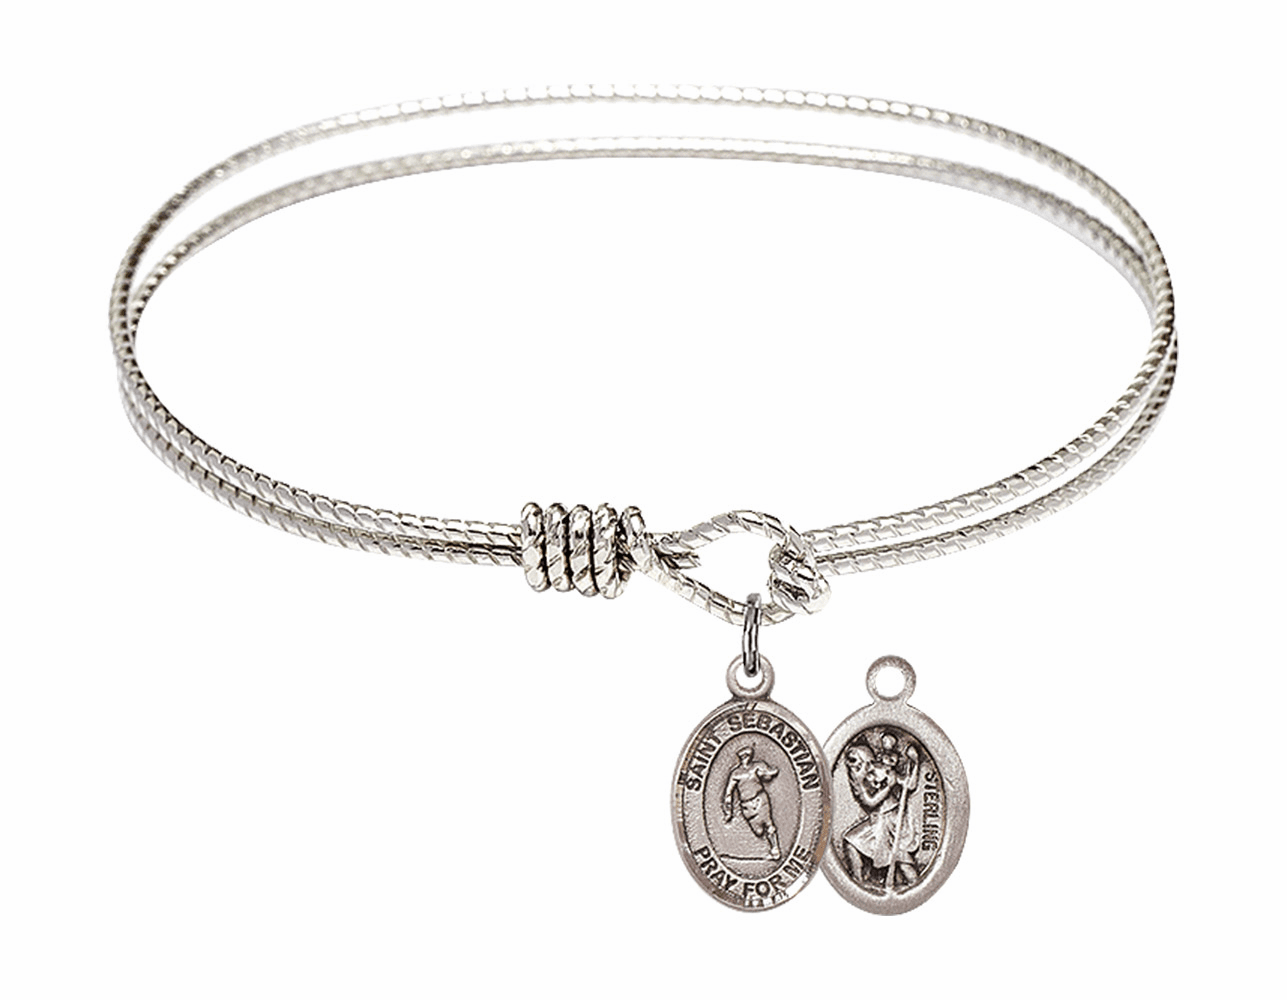 Twist Round Eye Hook St Sebastian Rugby  Bangle Charm Bracelet by Bliss